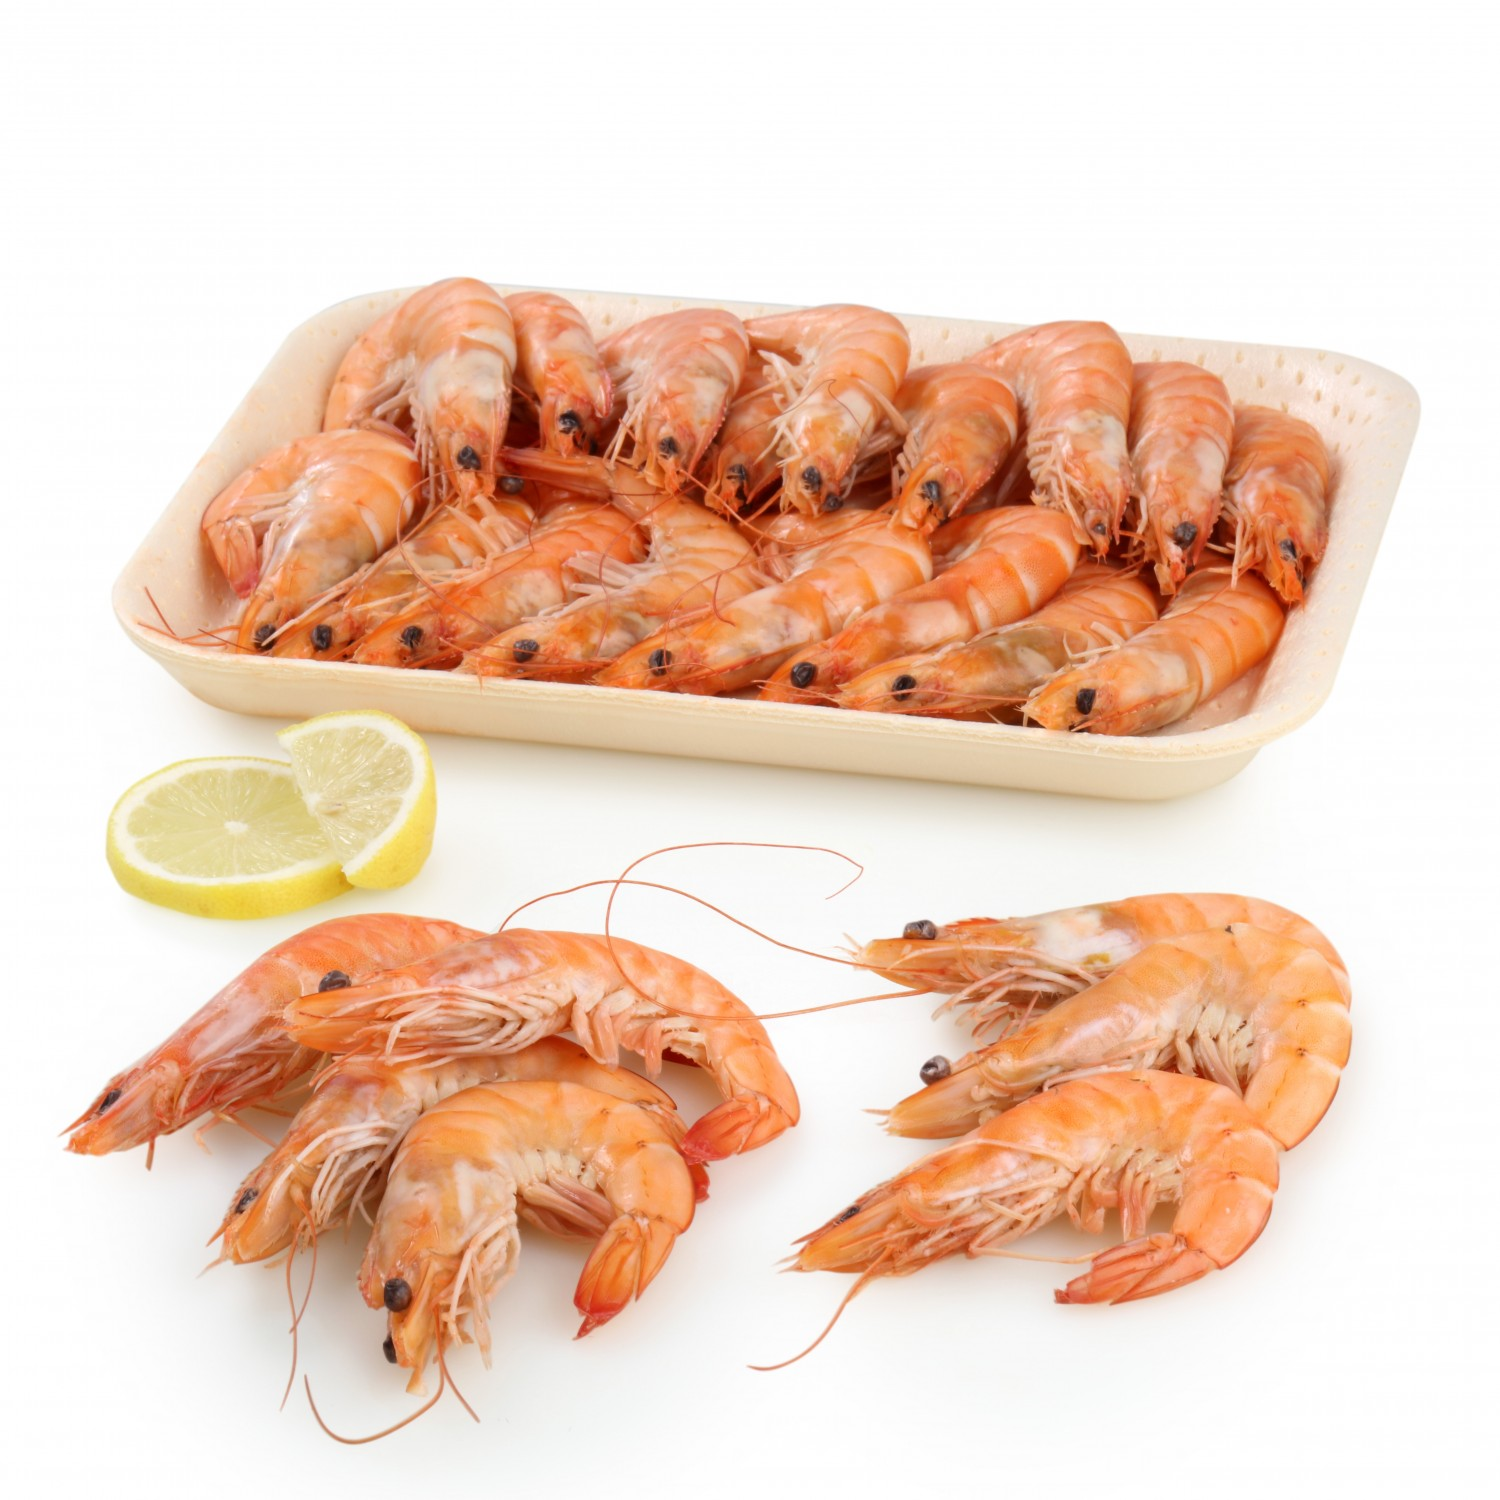 Langostino cocido Carrefour (30/40 ud) 500 g aprox